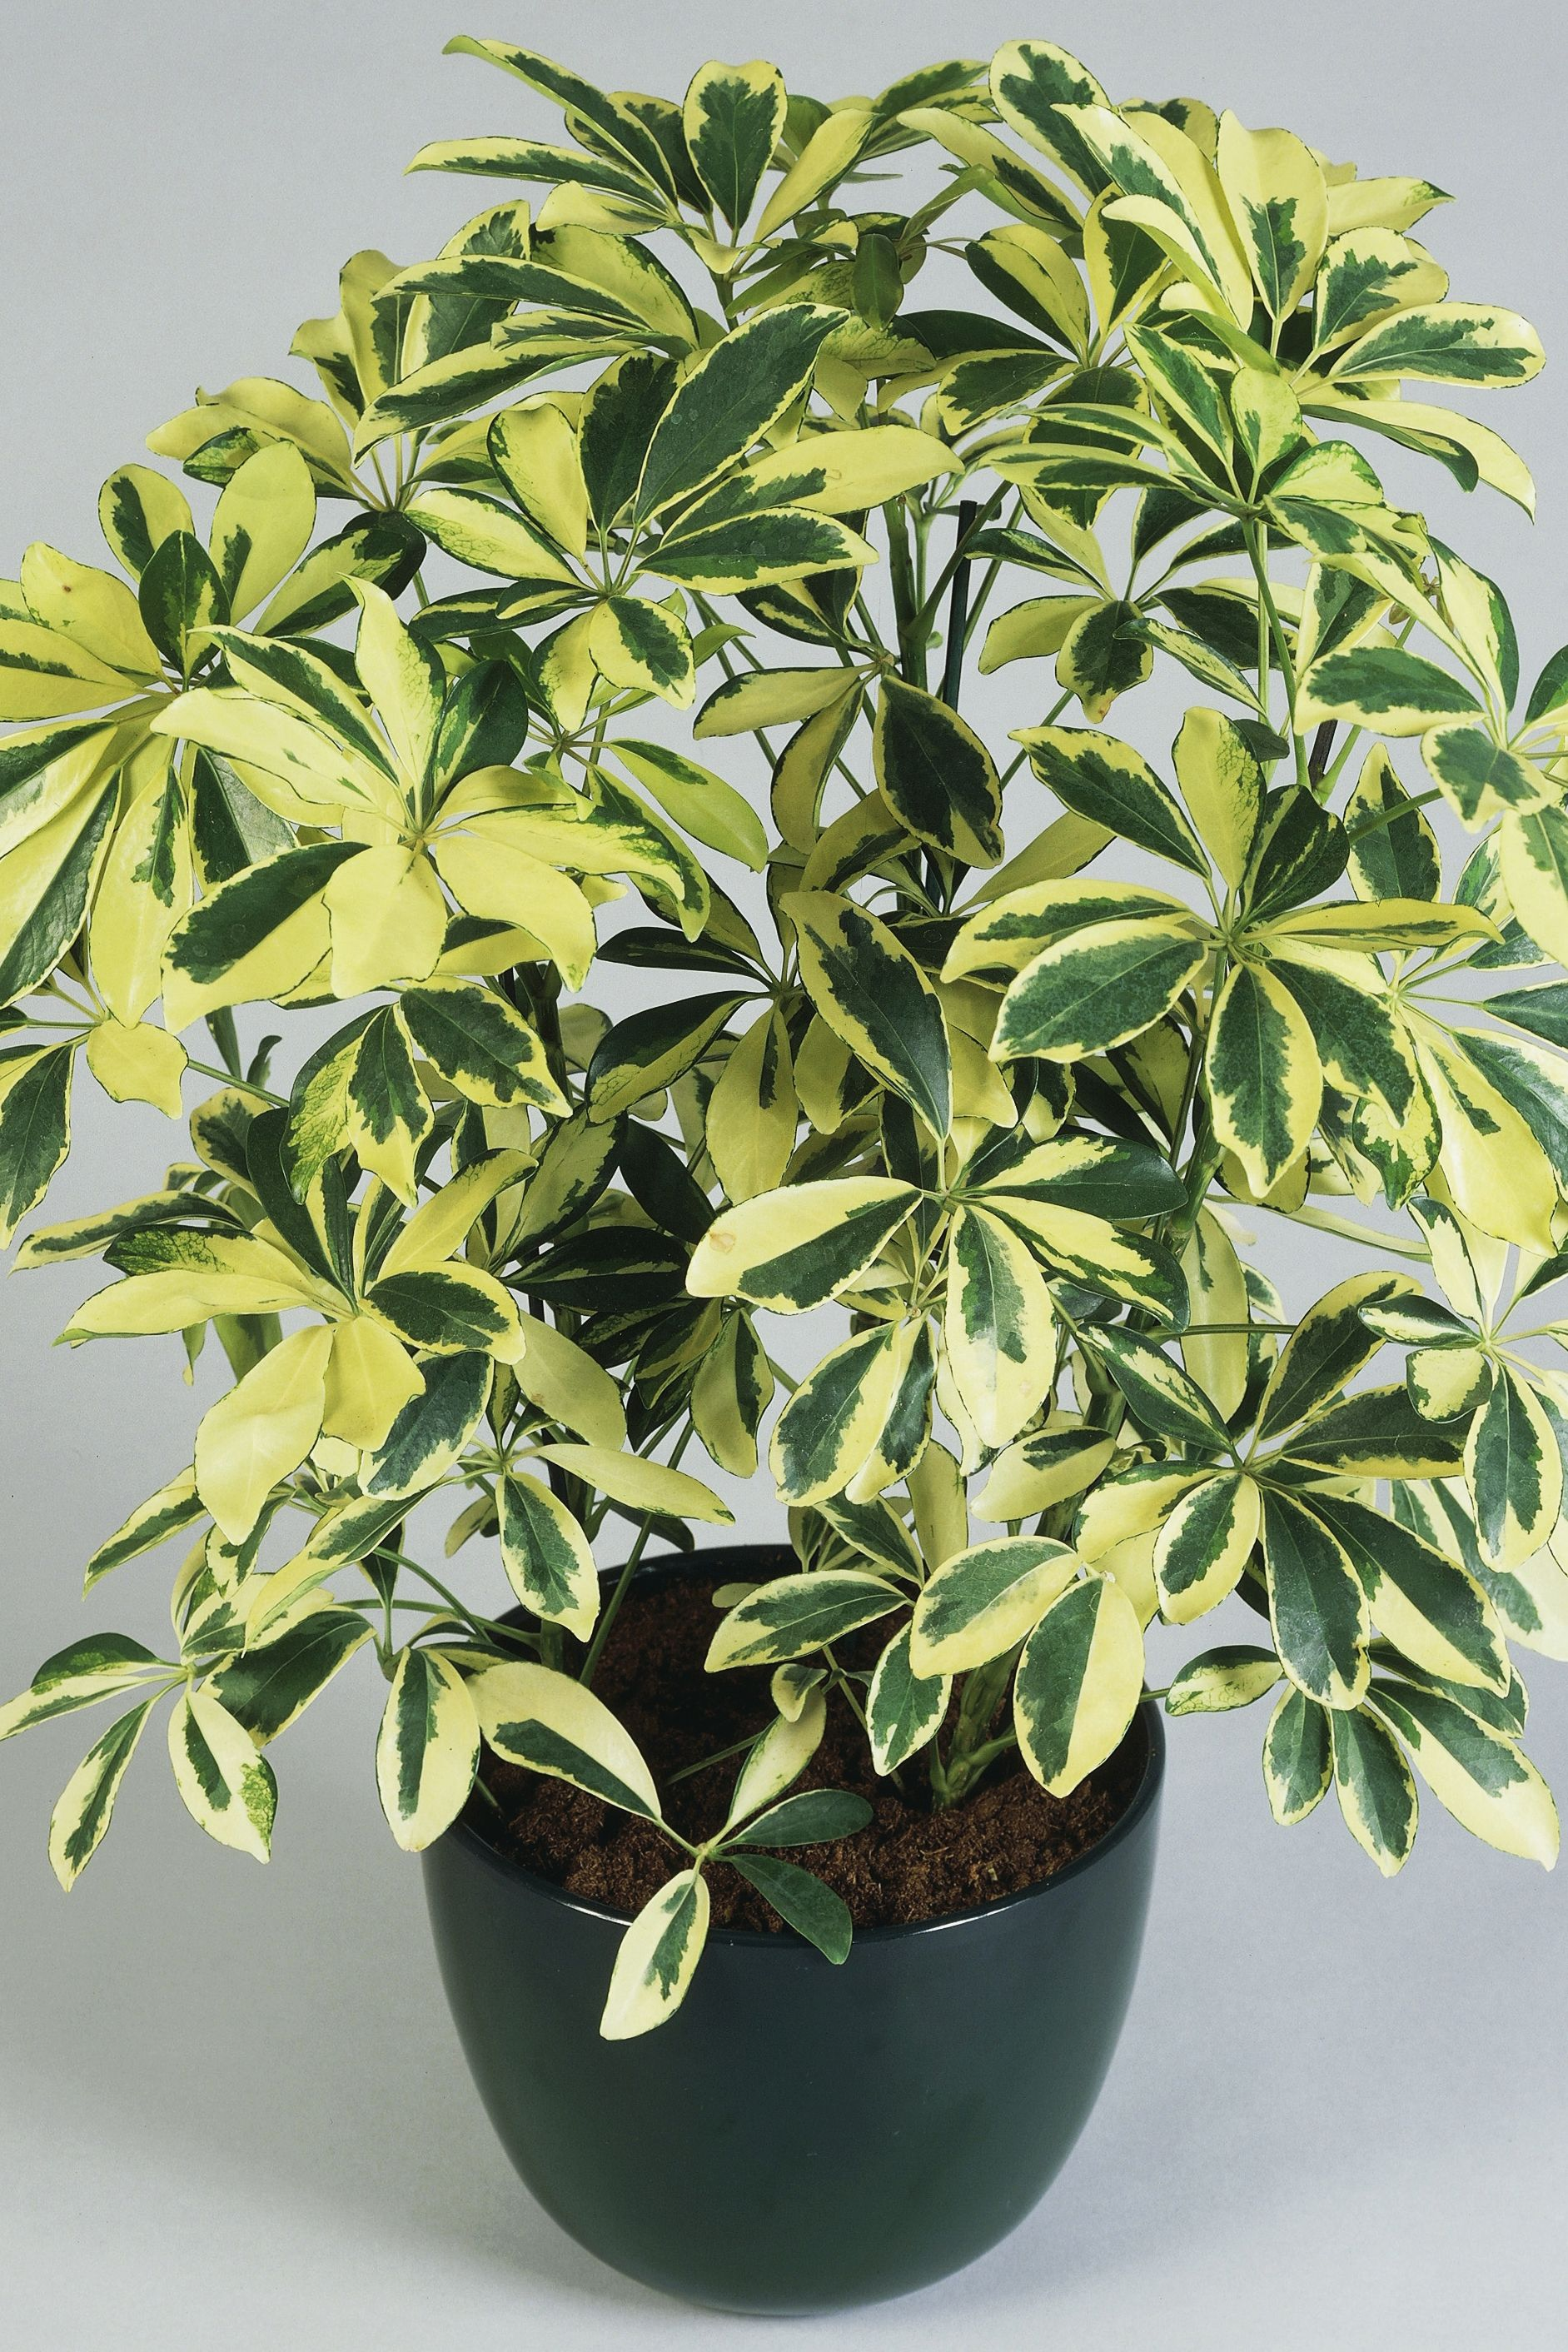 Easy To Care For Houseplants Potted Indoor Plants House Beautiful House Beautiful